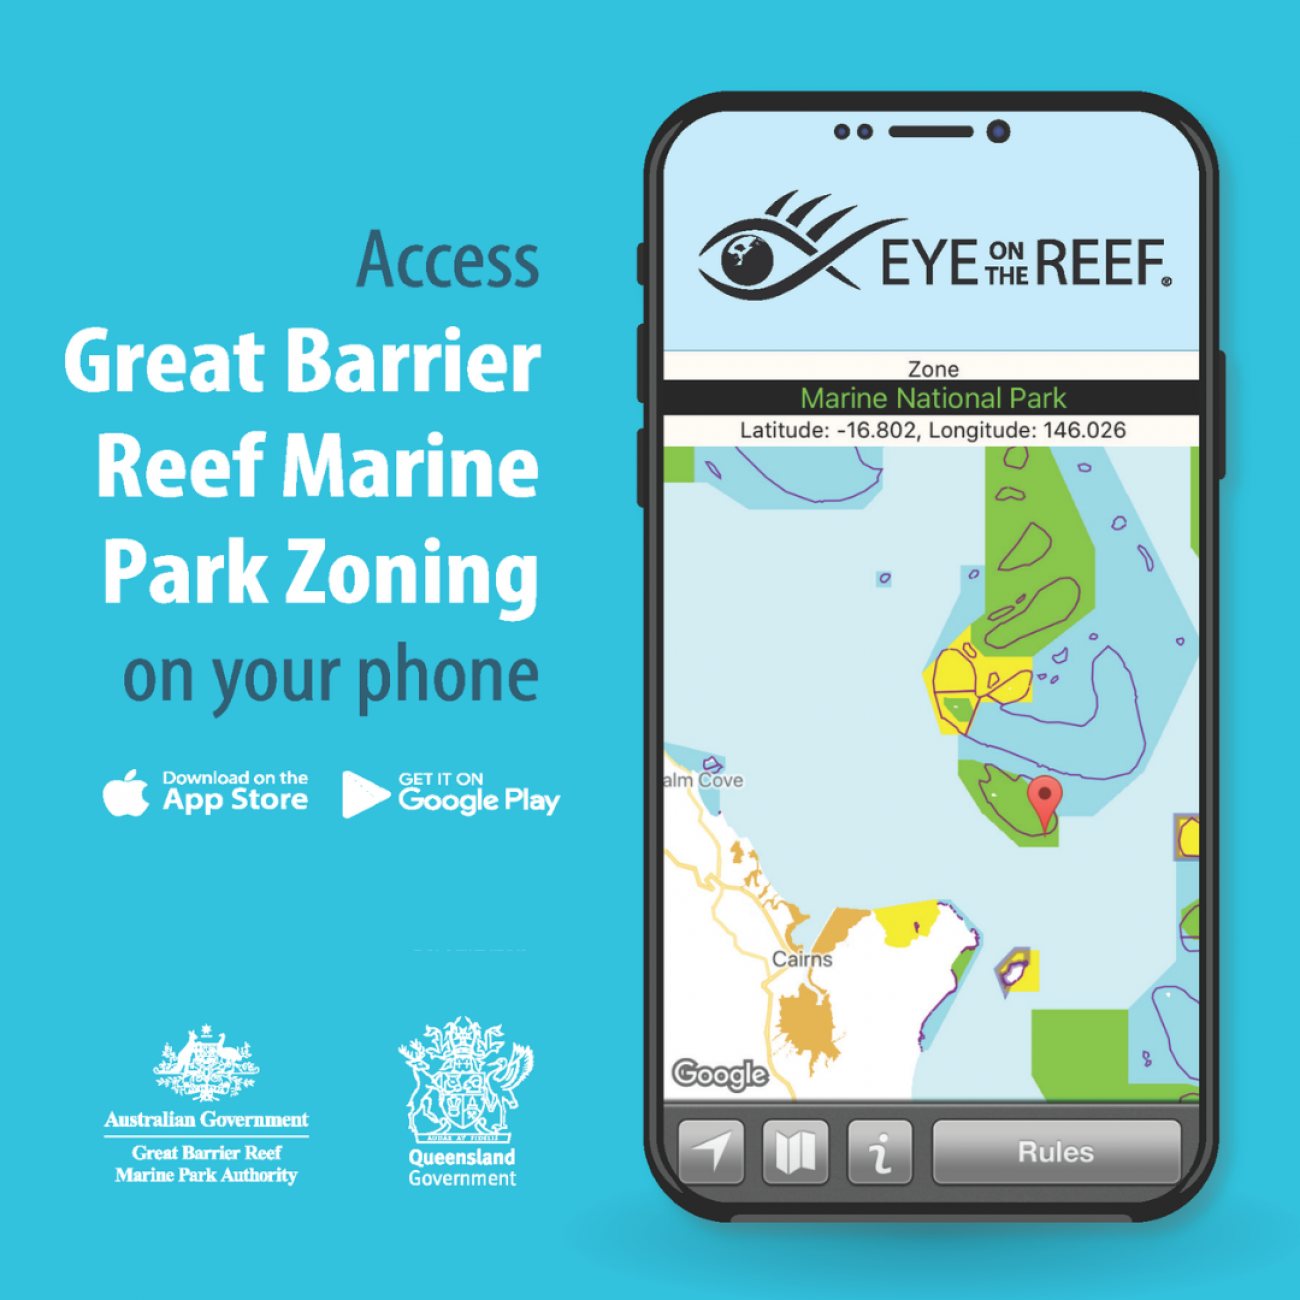 Access Great Barrier Reef zoning on your phone by downloading the Eye on the Reef app.